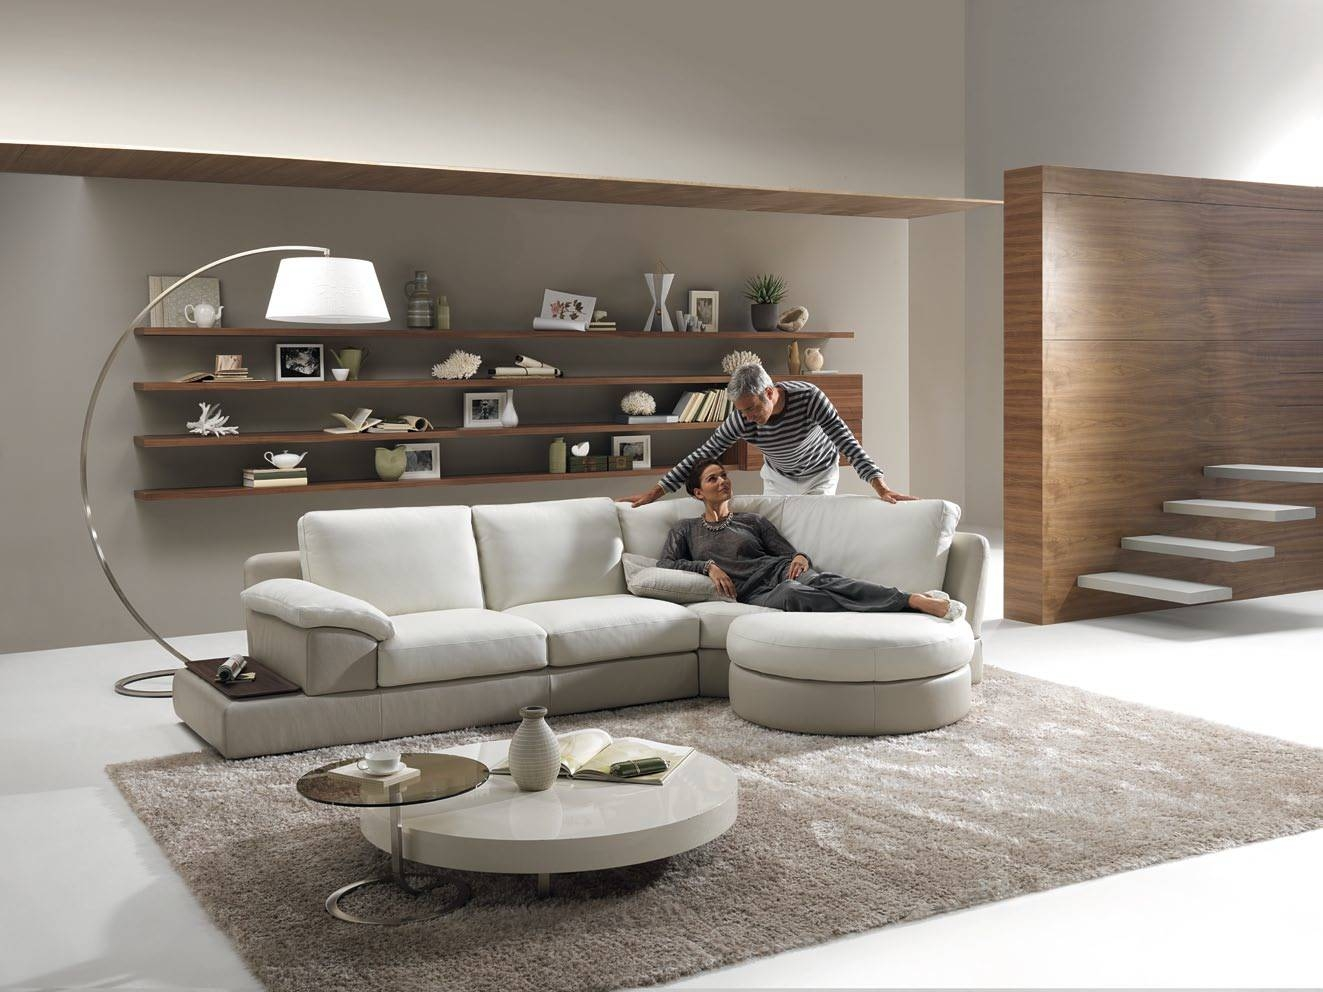 Plummers Sofas 59 With Plummers Sofas | Jinanhongyu Within Plummers Sofas (View 2 of 15)